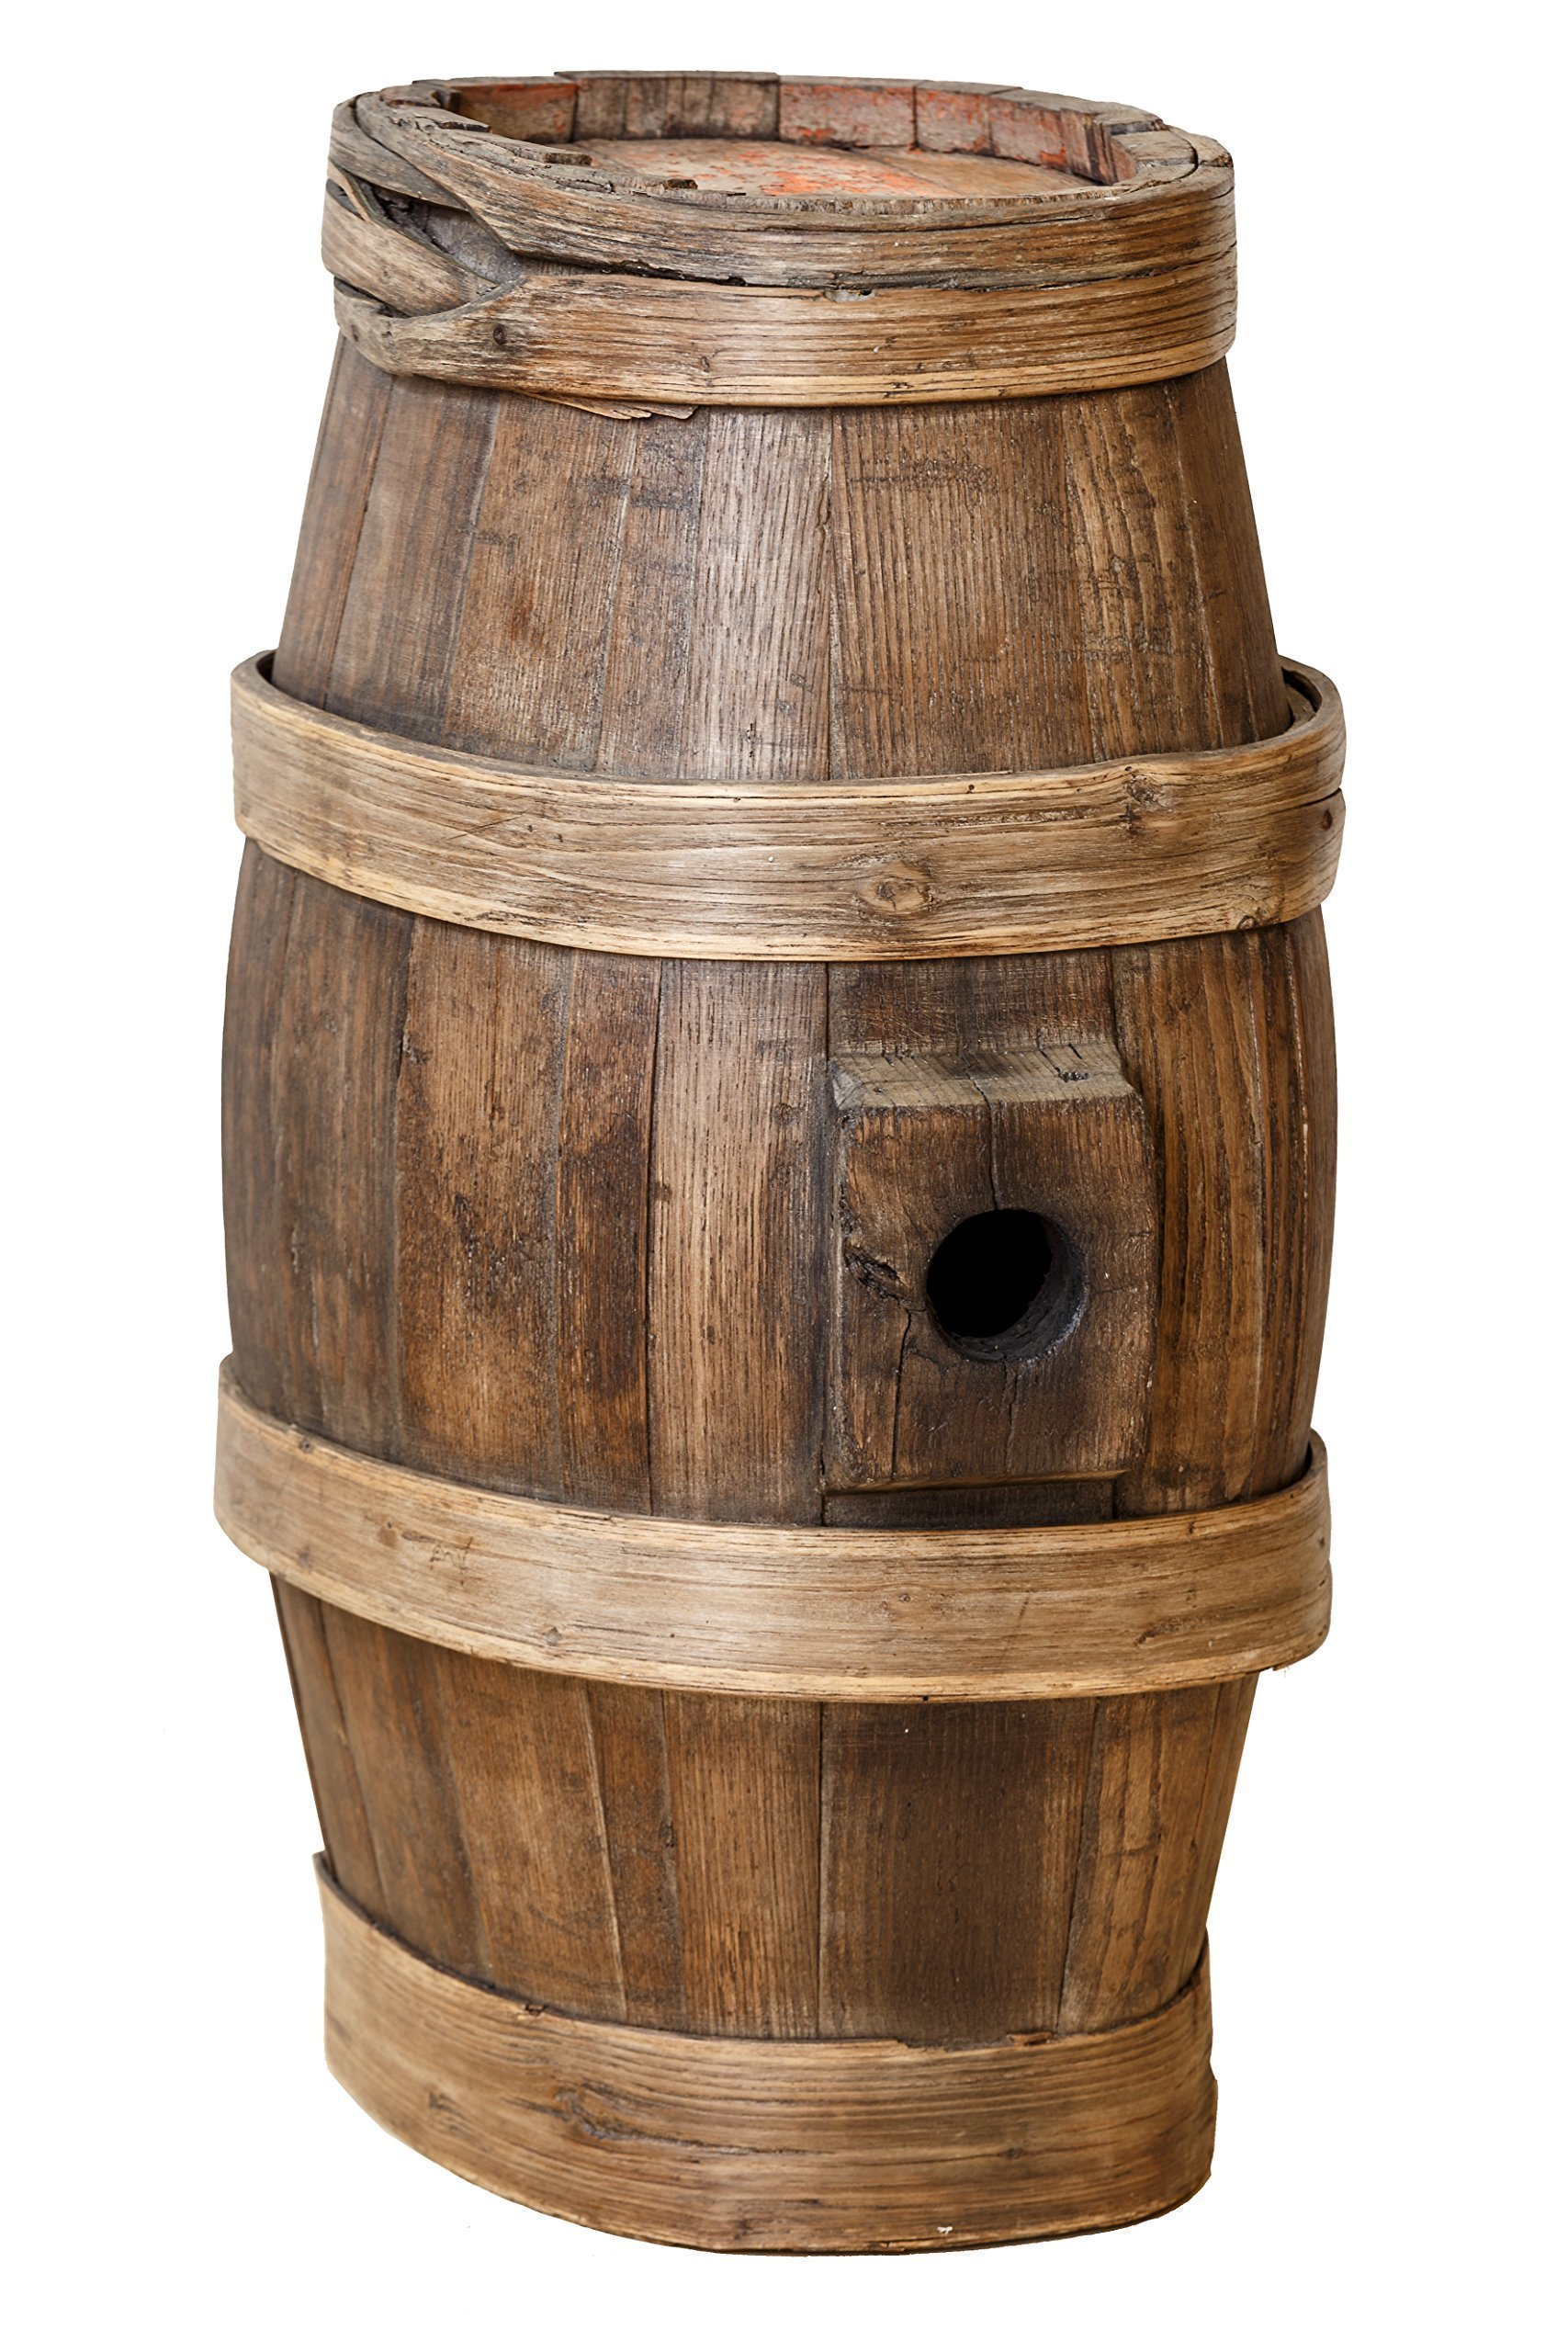 Le Porte del Chianti - Barrel Old Wine Container Can Be Used as a Base for a Table or Lamp Stand etc. by Le Porte Del Chianti